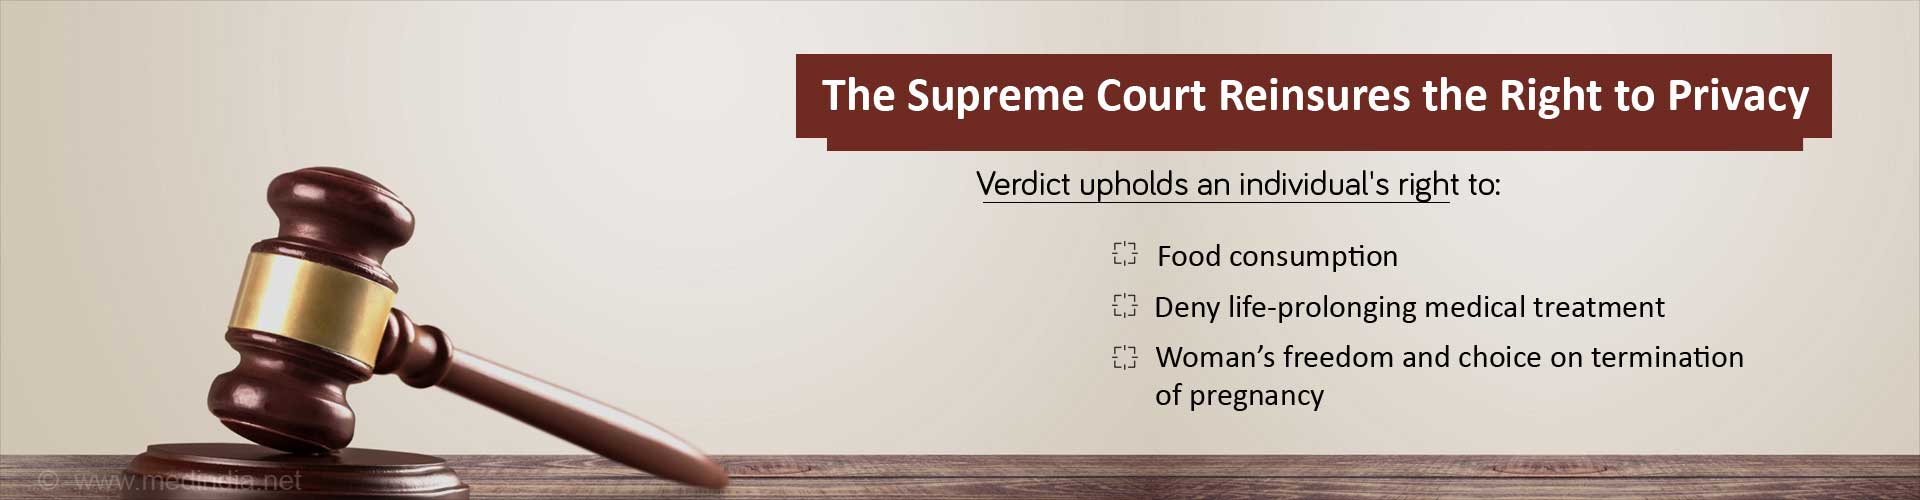 The supreme court re insures the right to privacy